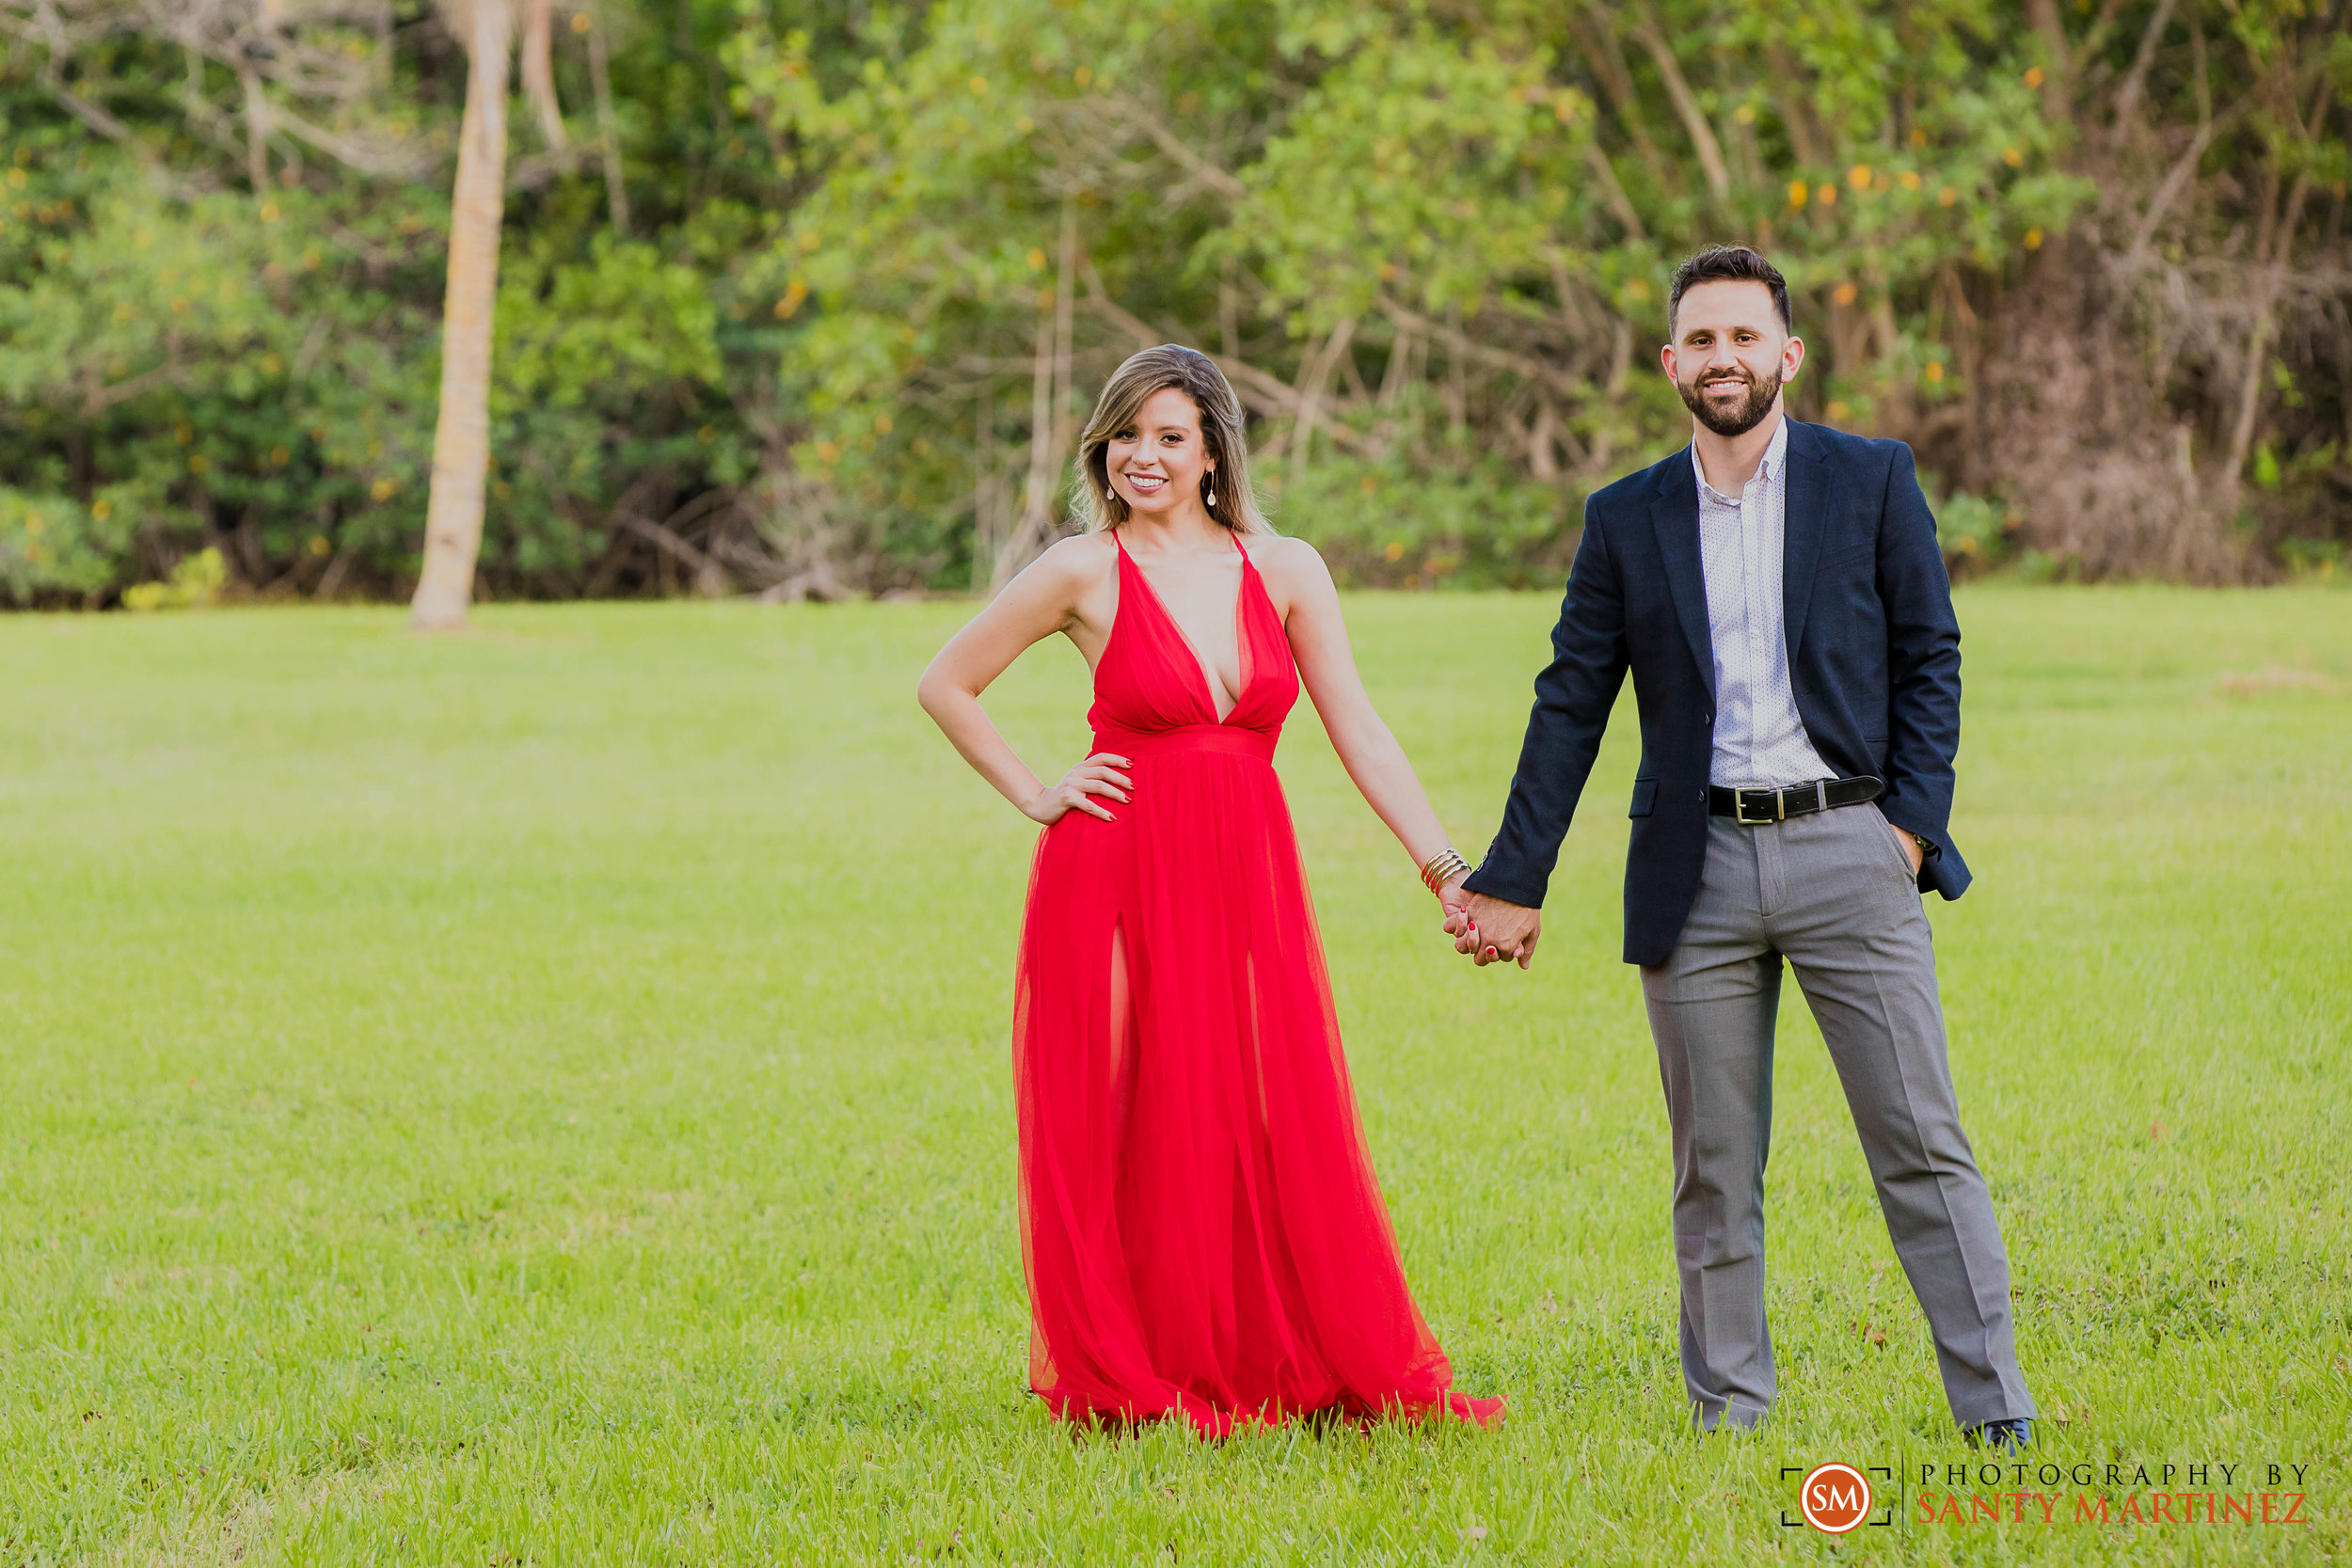 Engagement Session - Matheson Hammock Park - Santy Martinez Wedding Photographer-12.jpg